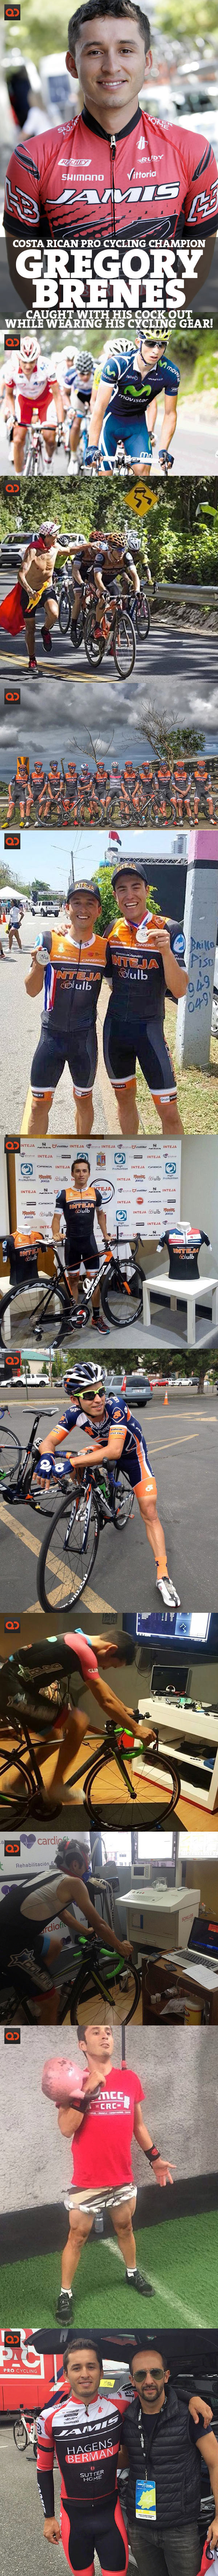 Gregory Brenes, Costa Rican Pro Cycling Champion, Caught With His Cock Out While Wearing His Cycling Gear!